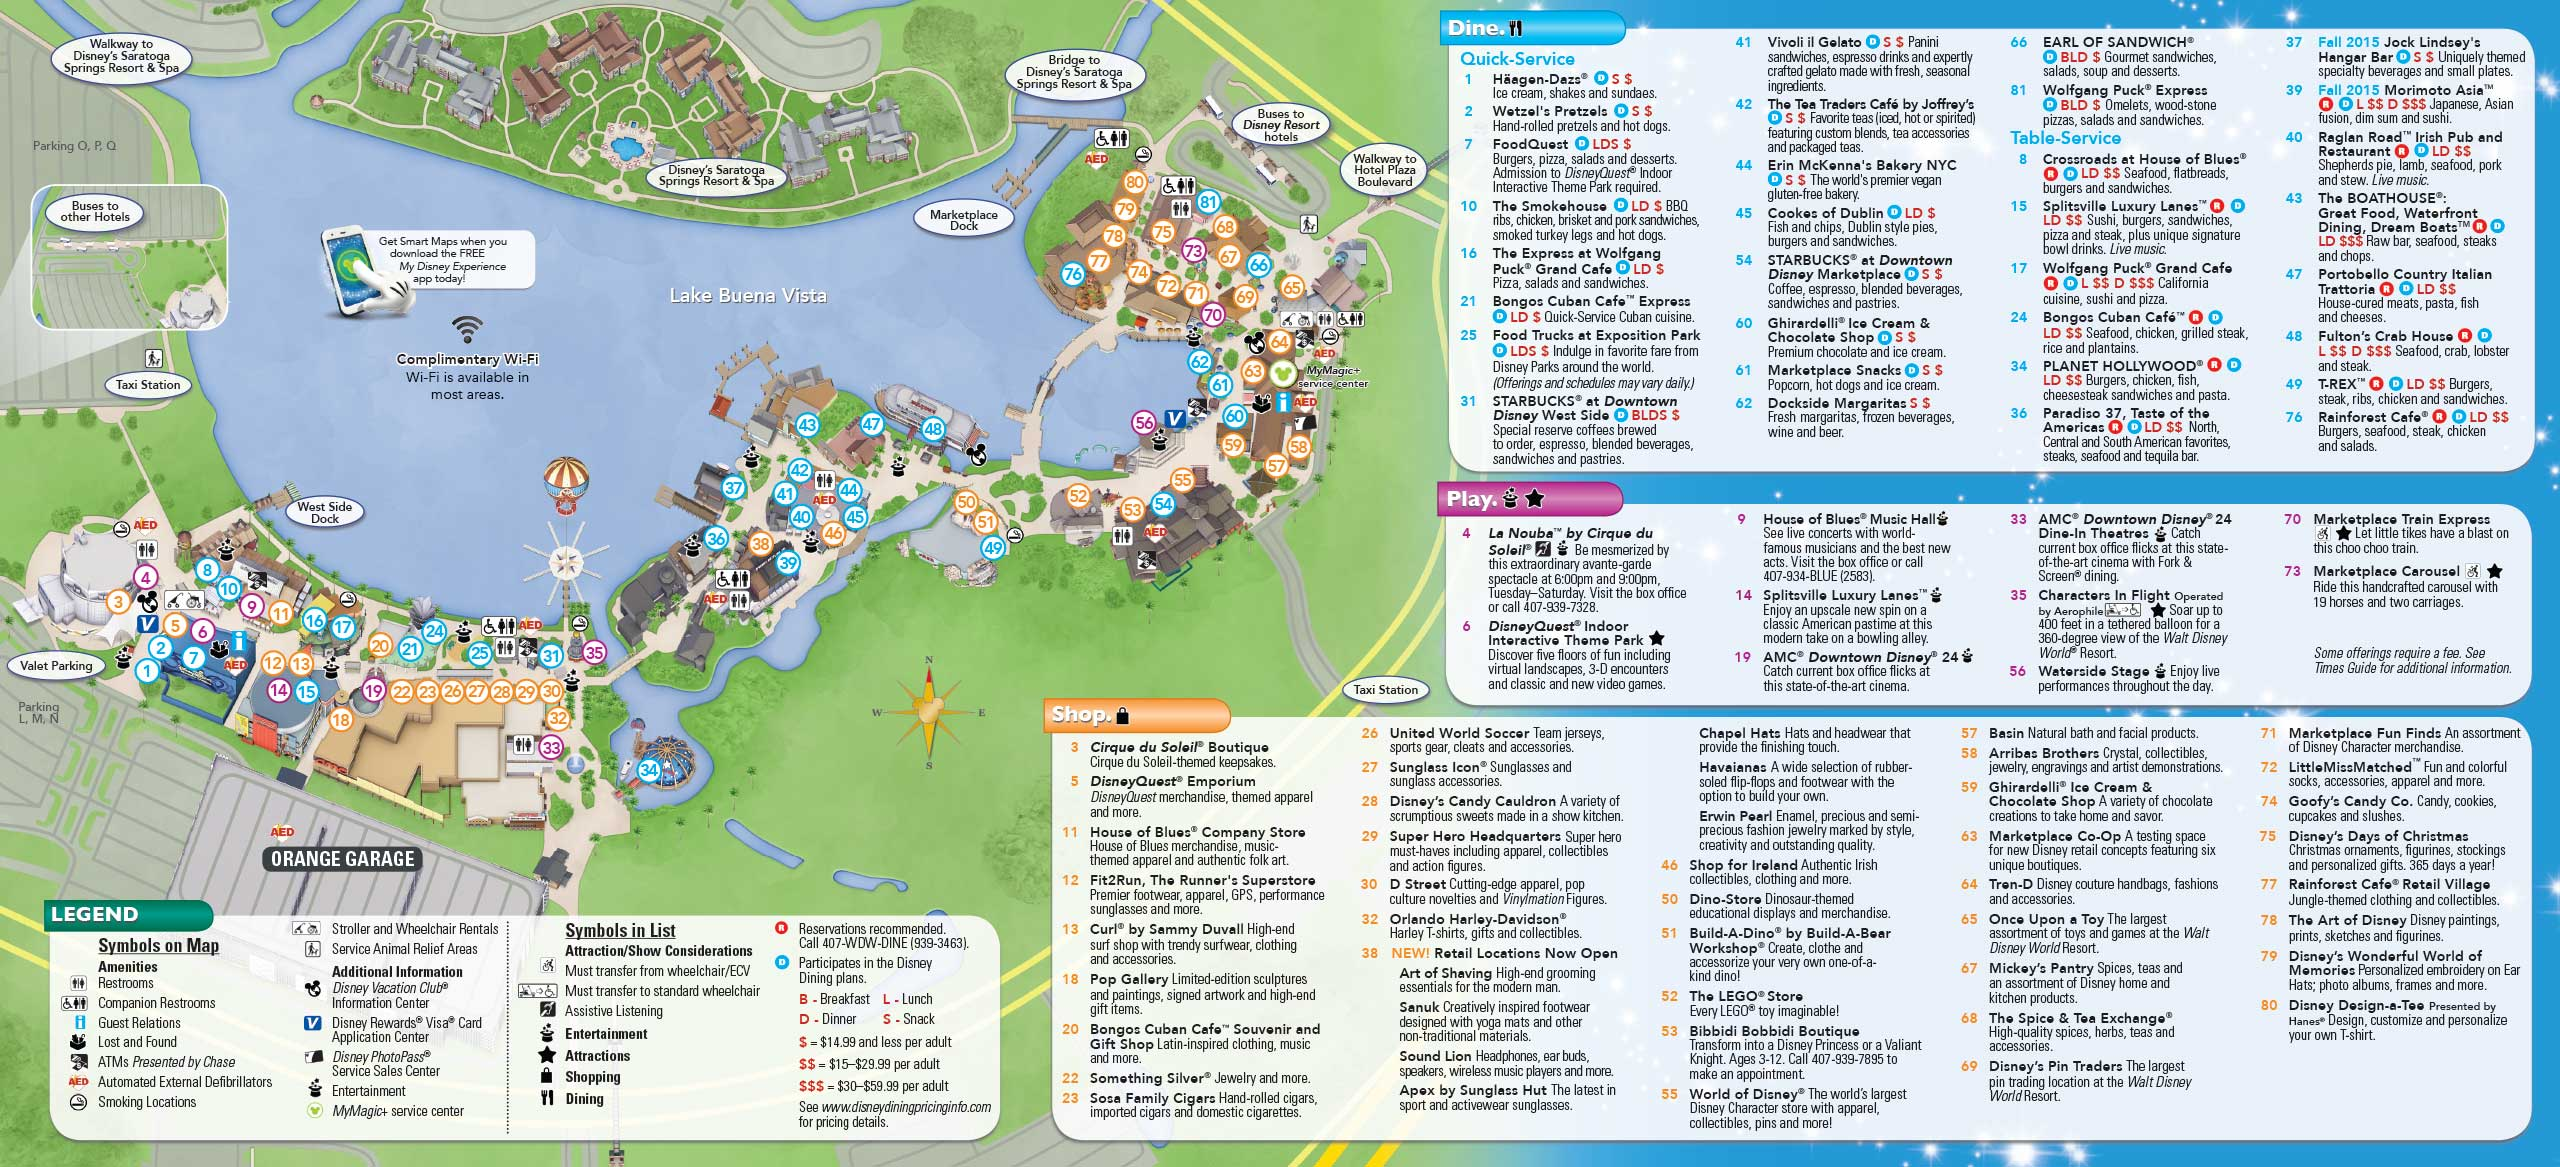 wdw magic kingdom map with 03aug2015 Photos New Downtown Disney Guide Map Includes Disney Springs Name And New Restaurants on Skywaytofantasyland moreover Disney World Avatar Pandora Theme Park besides Wdw 2016 Crowd Calendar besides 3 World Class Drum Corps Groups To Perform This Sunday At Disney Springs besides Disneys Animal Kingdom.